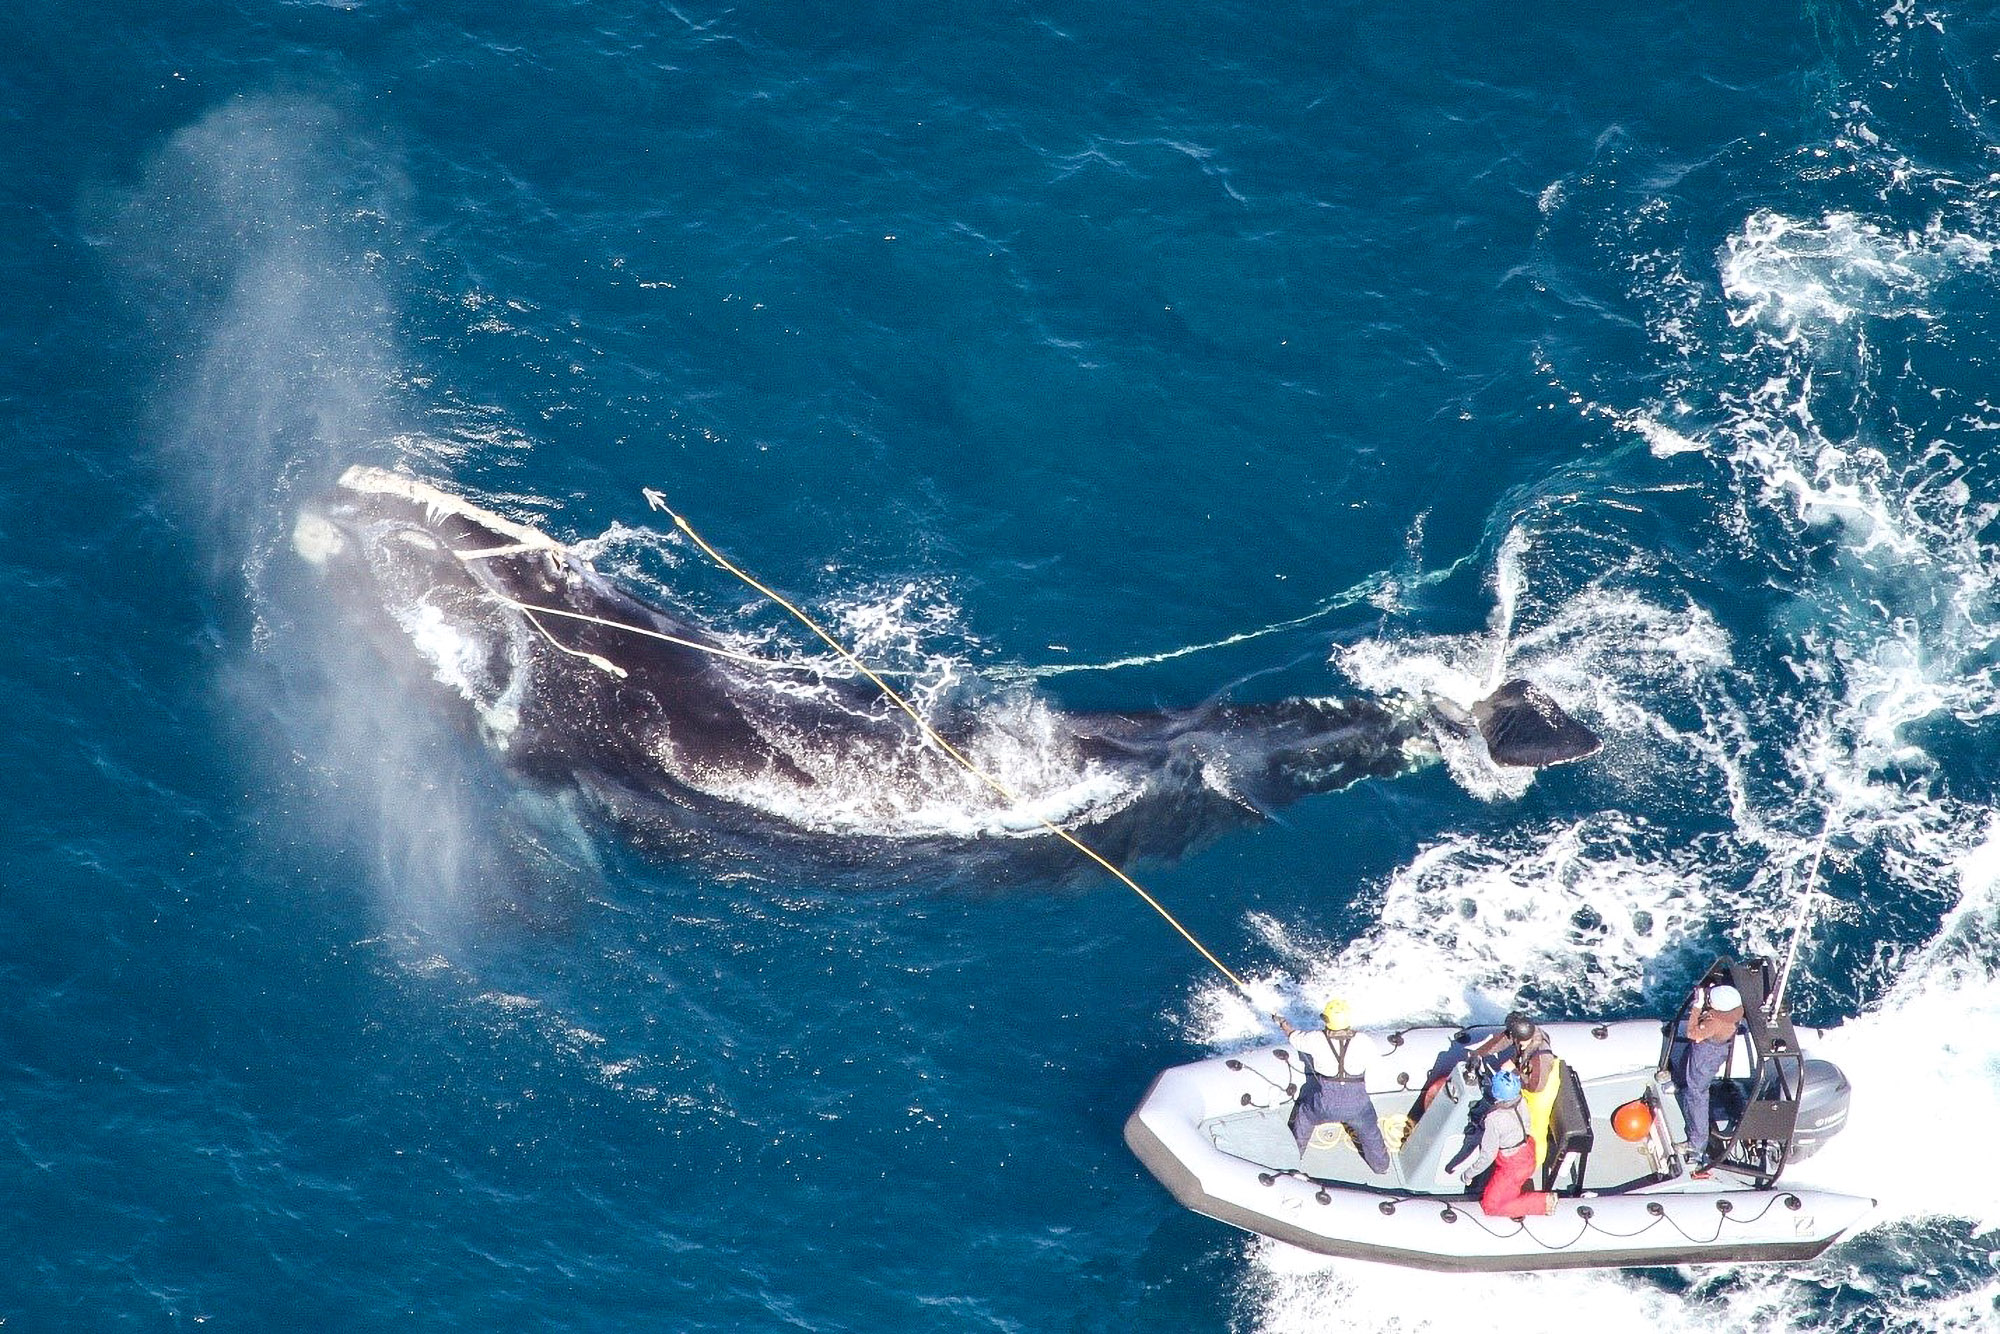 VIDEO: Spout Of Place: Global Warming Driving Arctic Whales Into Dangerous Waters